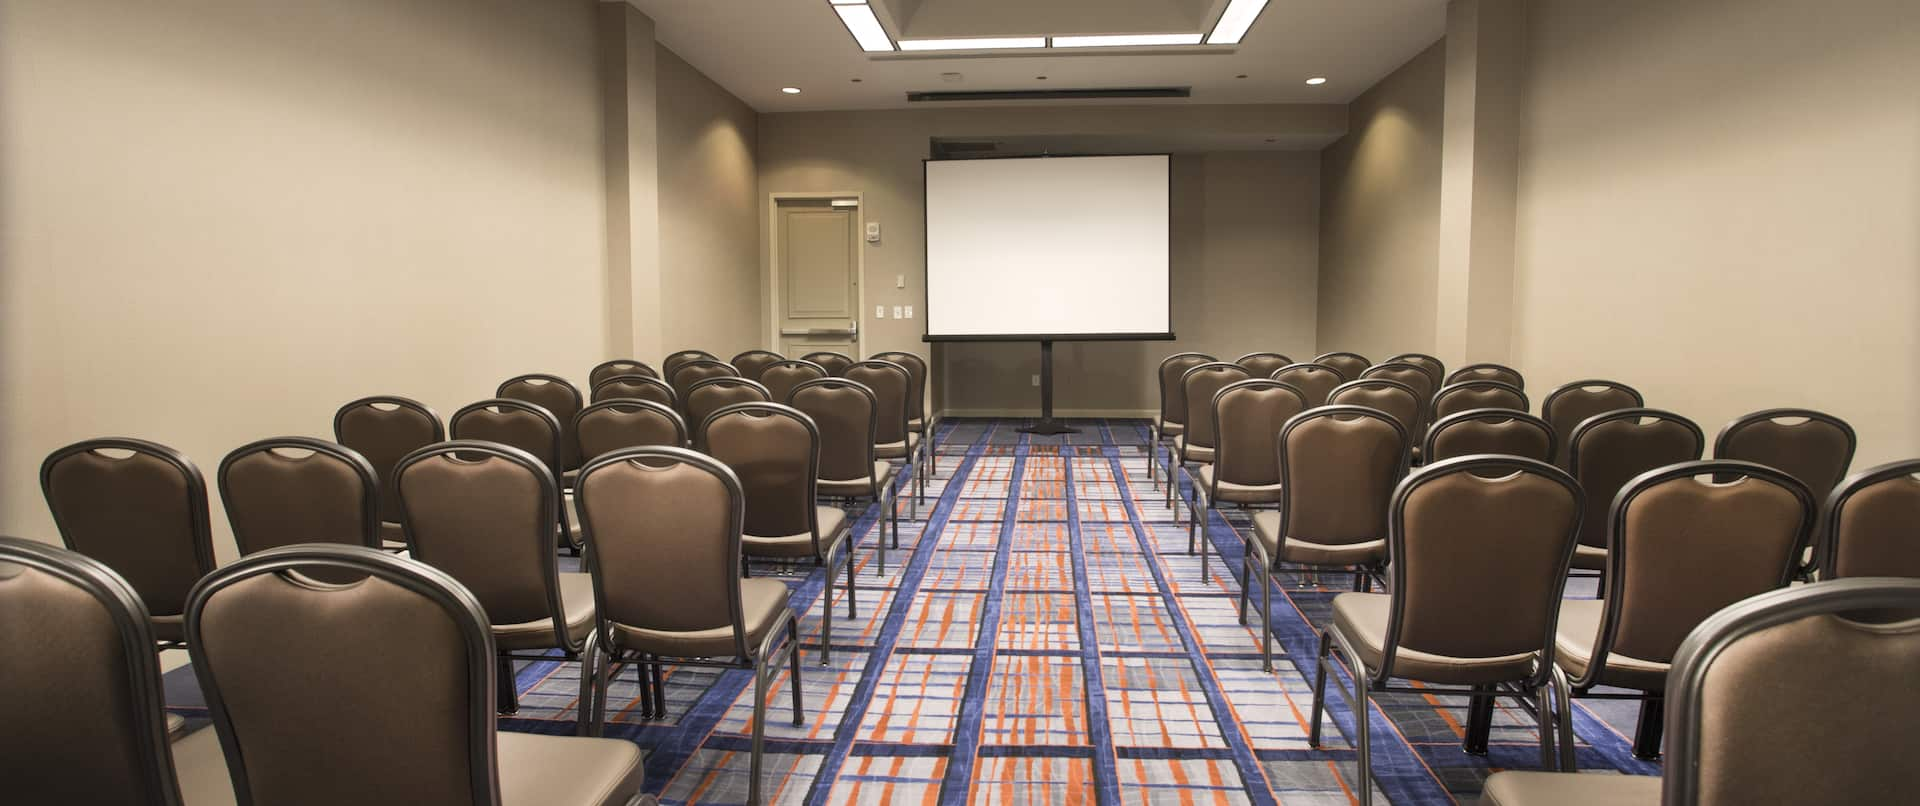 Meeting Room Theater Setup with Projector Screen